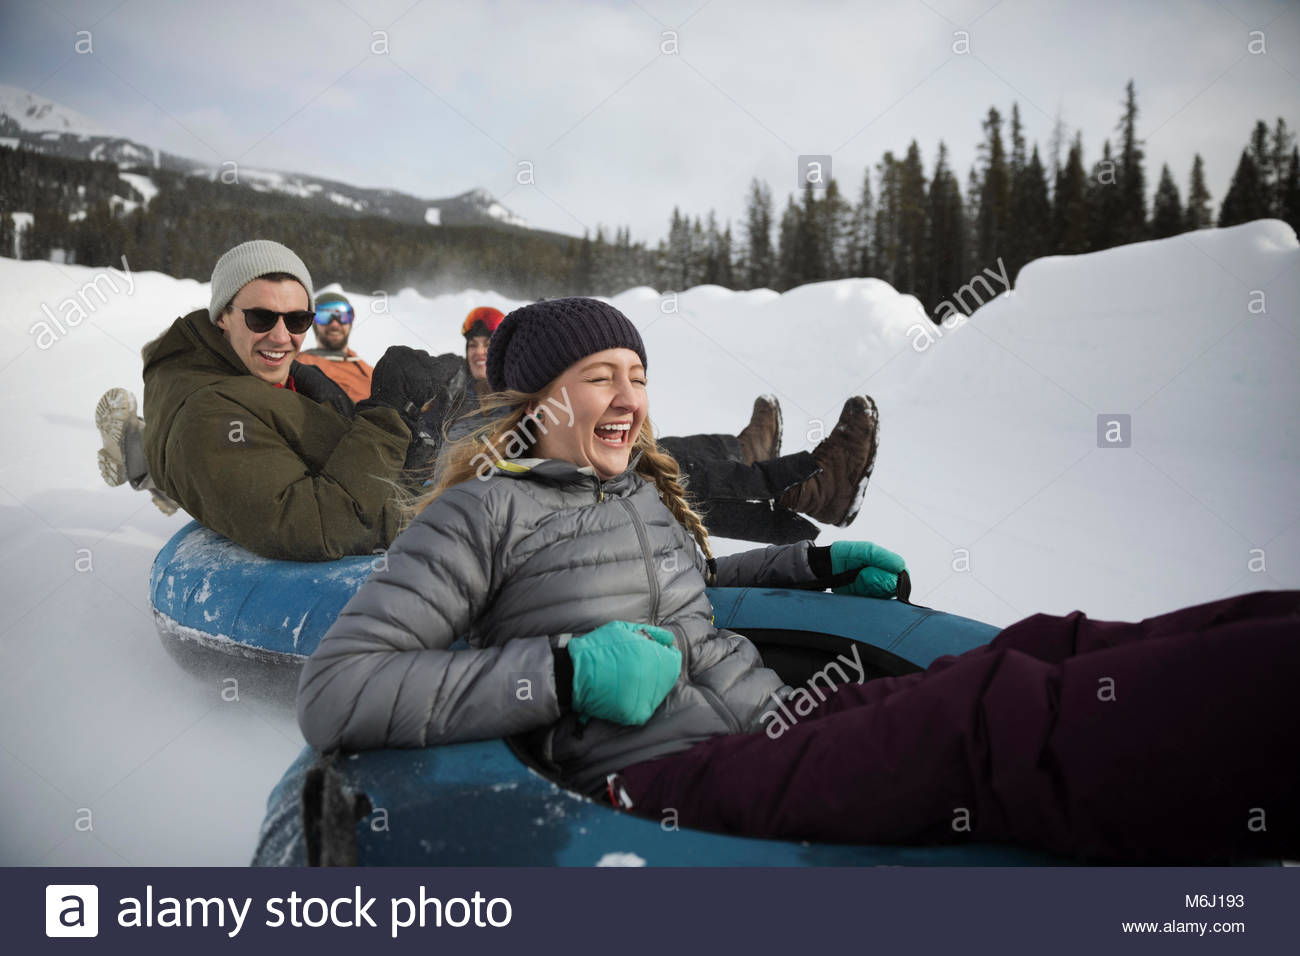 Playful, happy friends riding inner tubes in snow - Stock Image